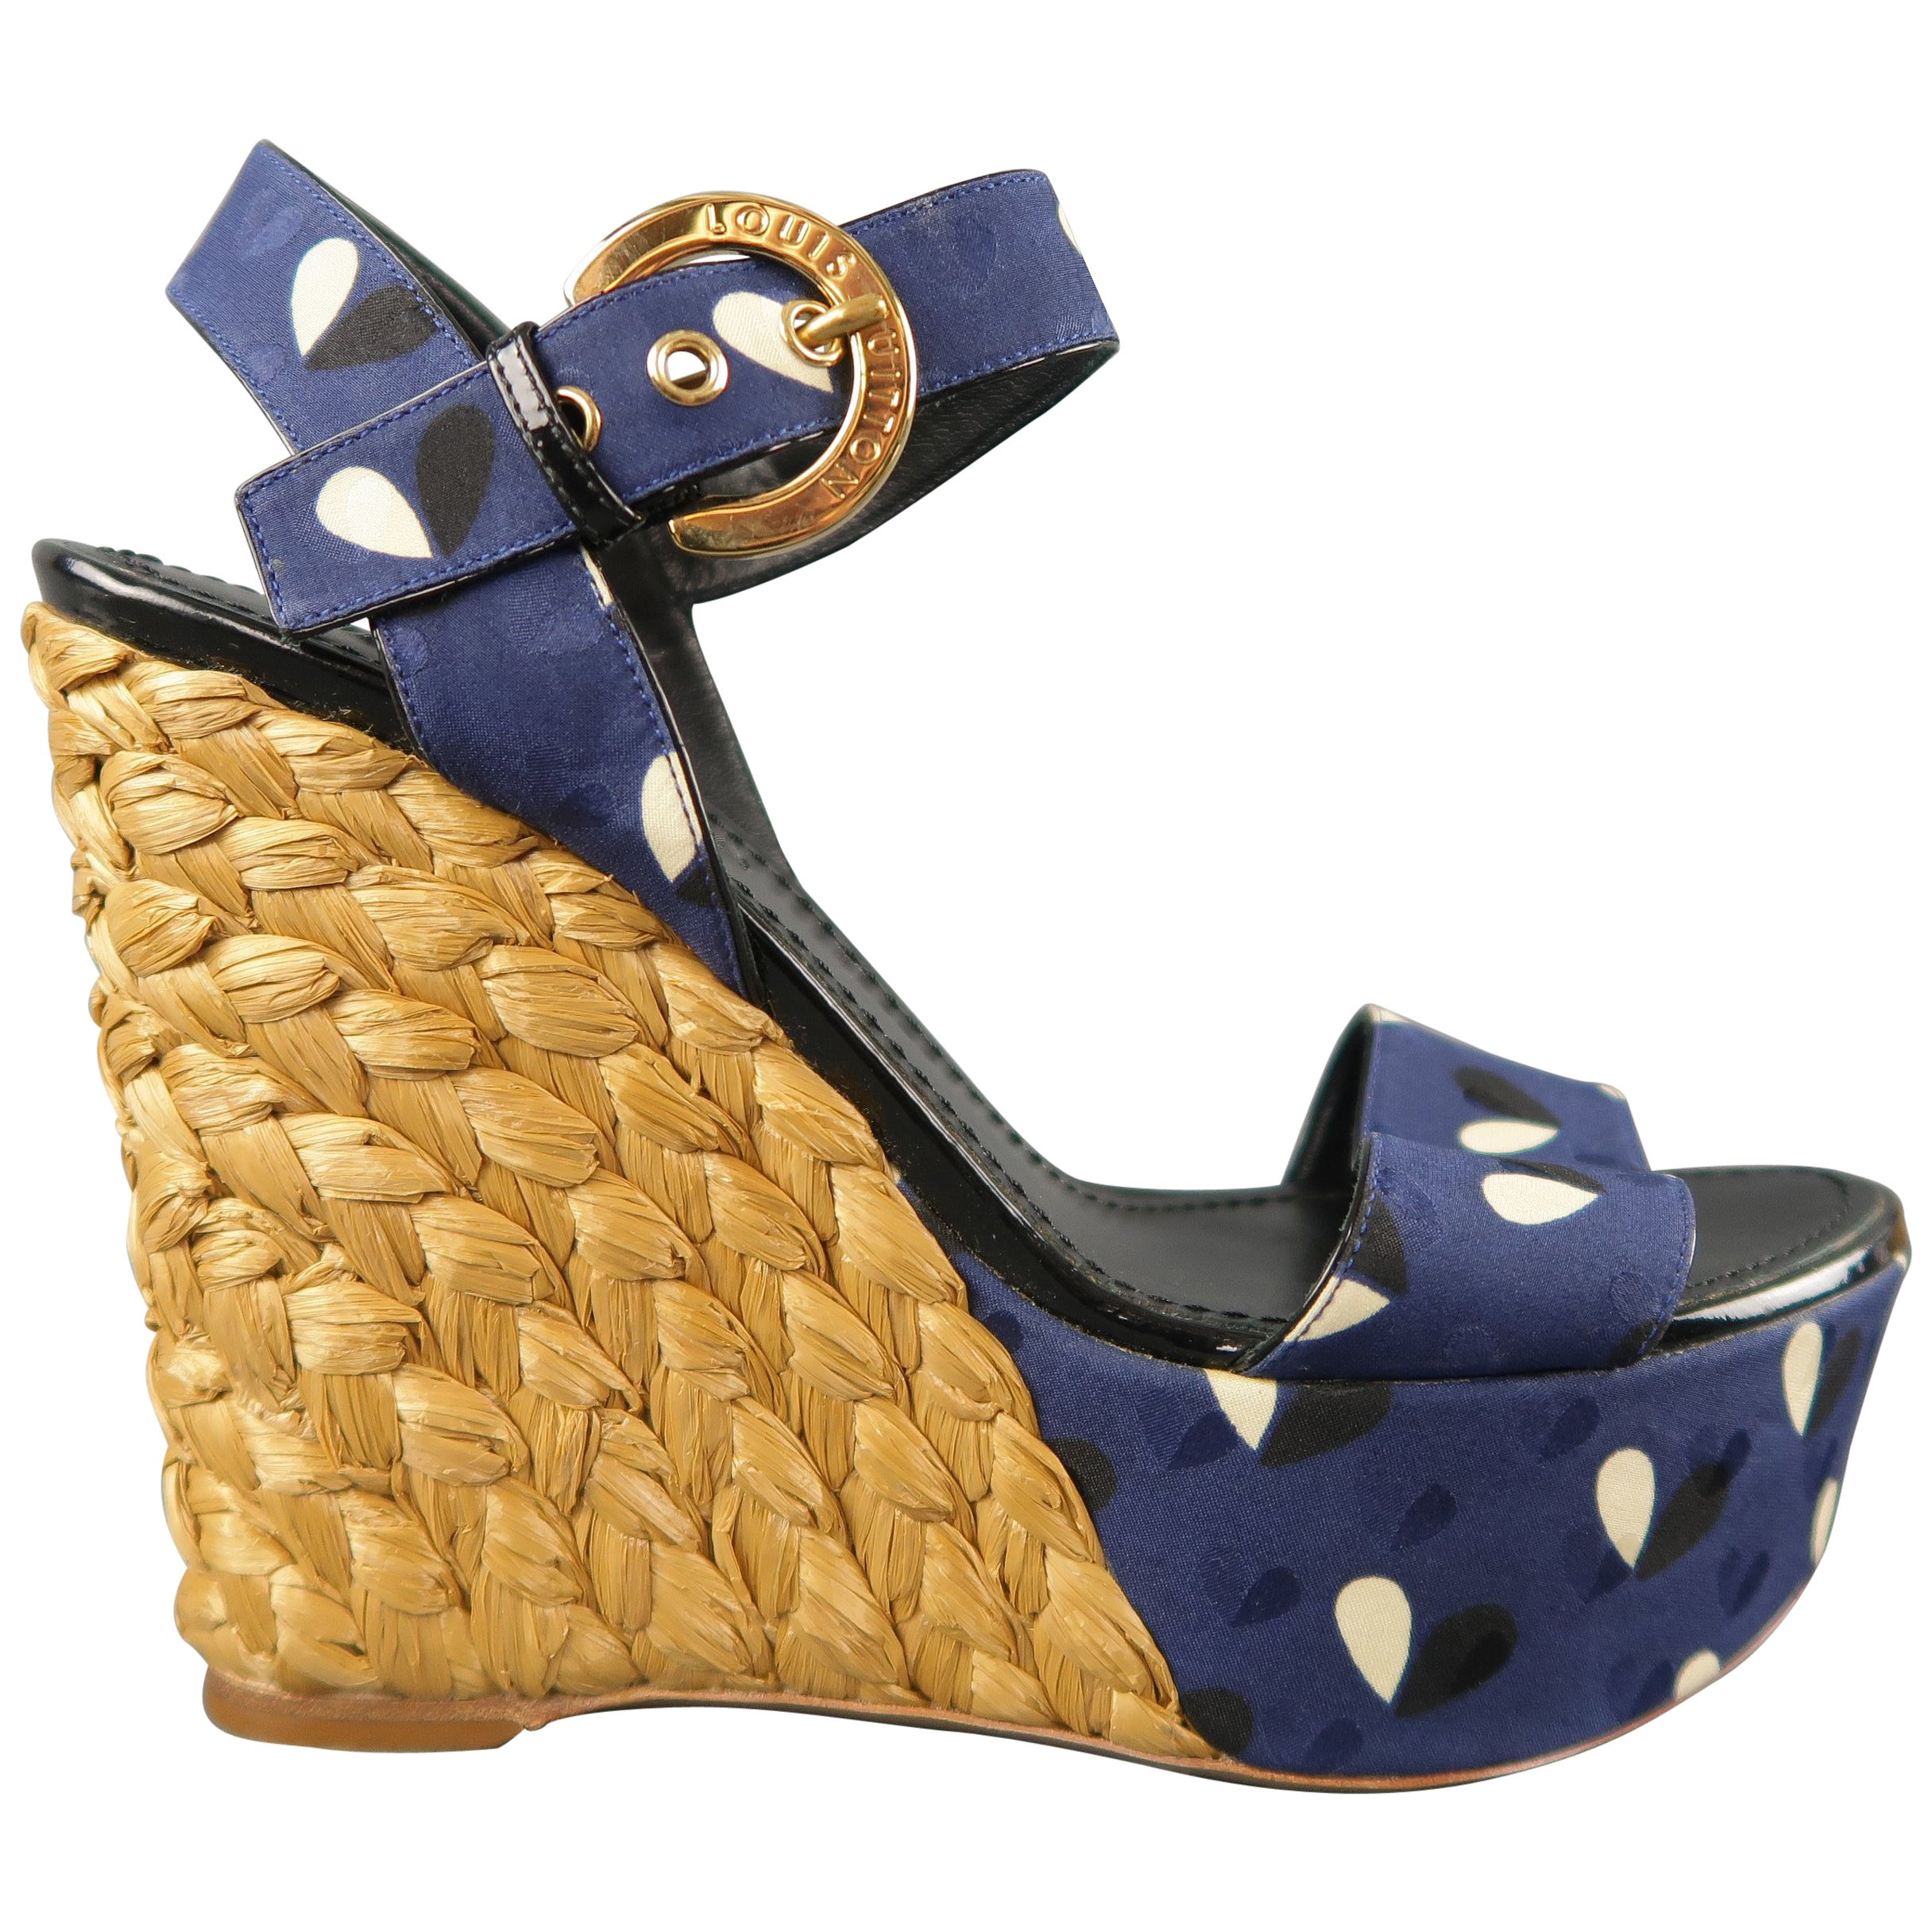 3cff2c17fb40 LOUIS VUITTON Size 7 Navy Fabric Braided Espadrille Platform Wedge Sandals  at 1stdibs